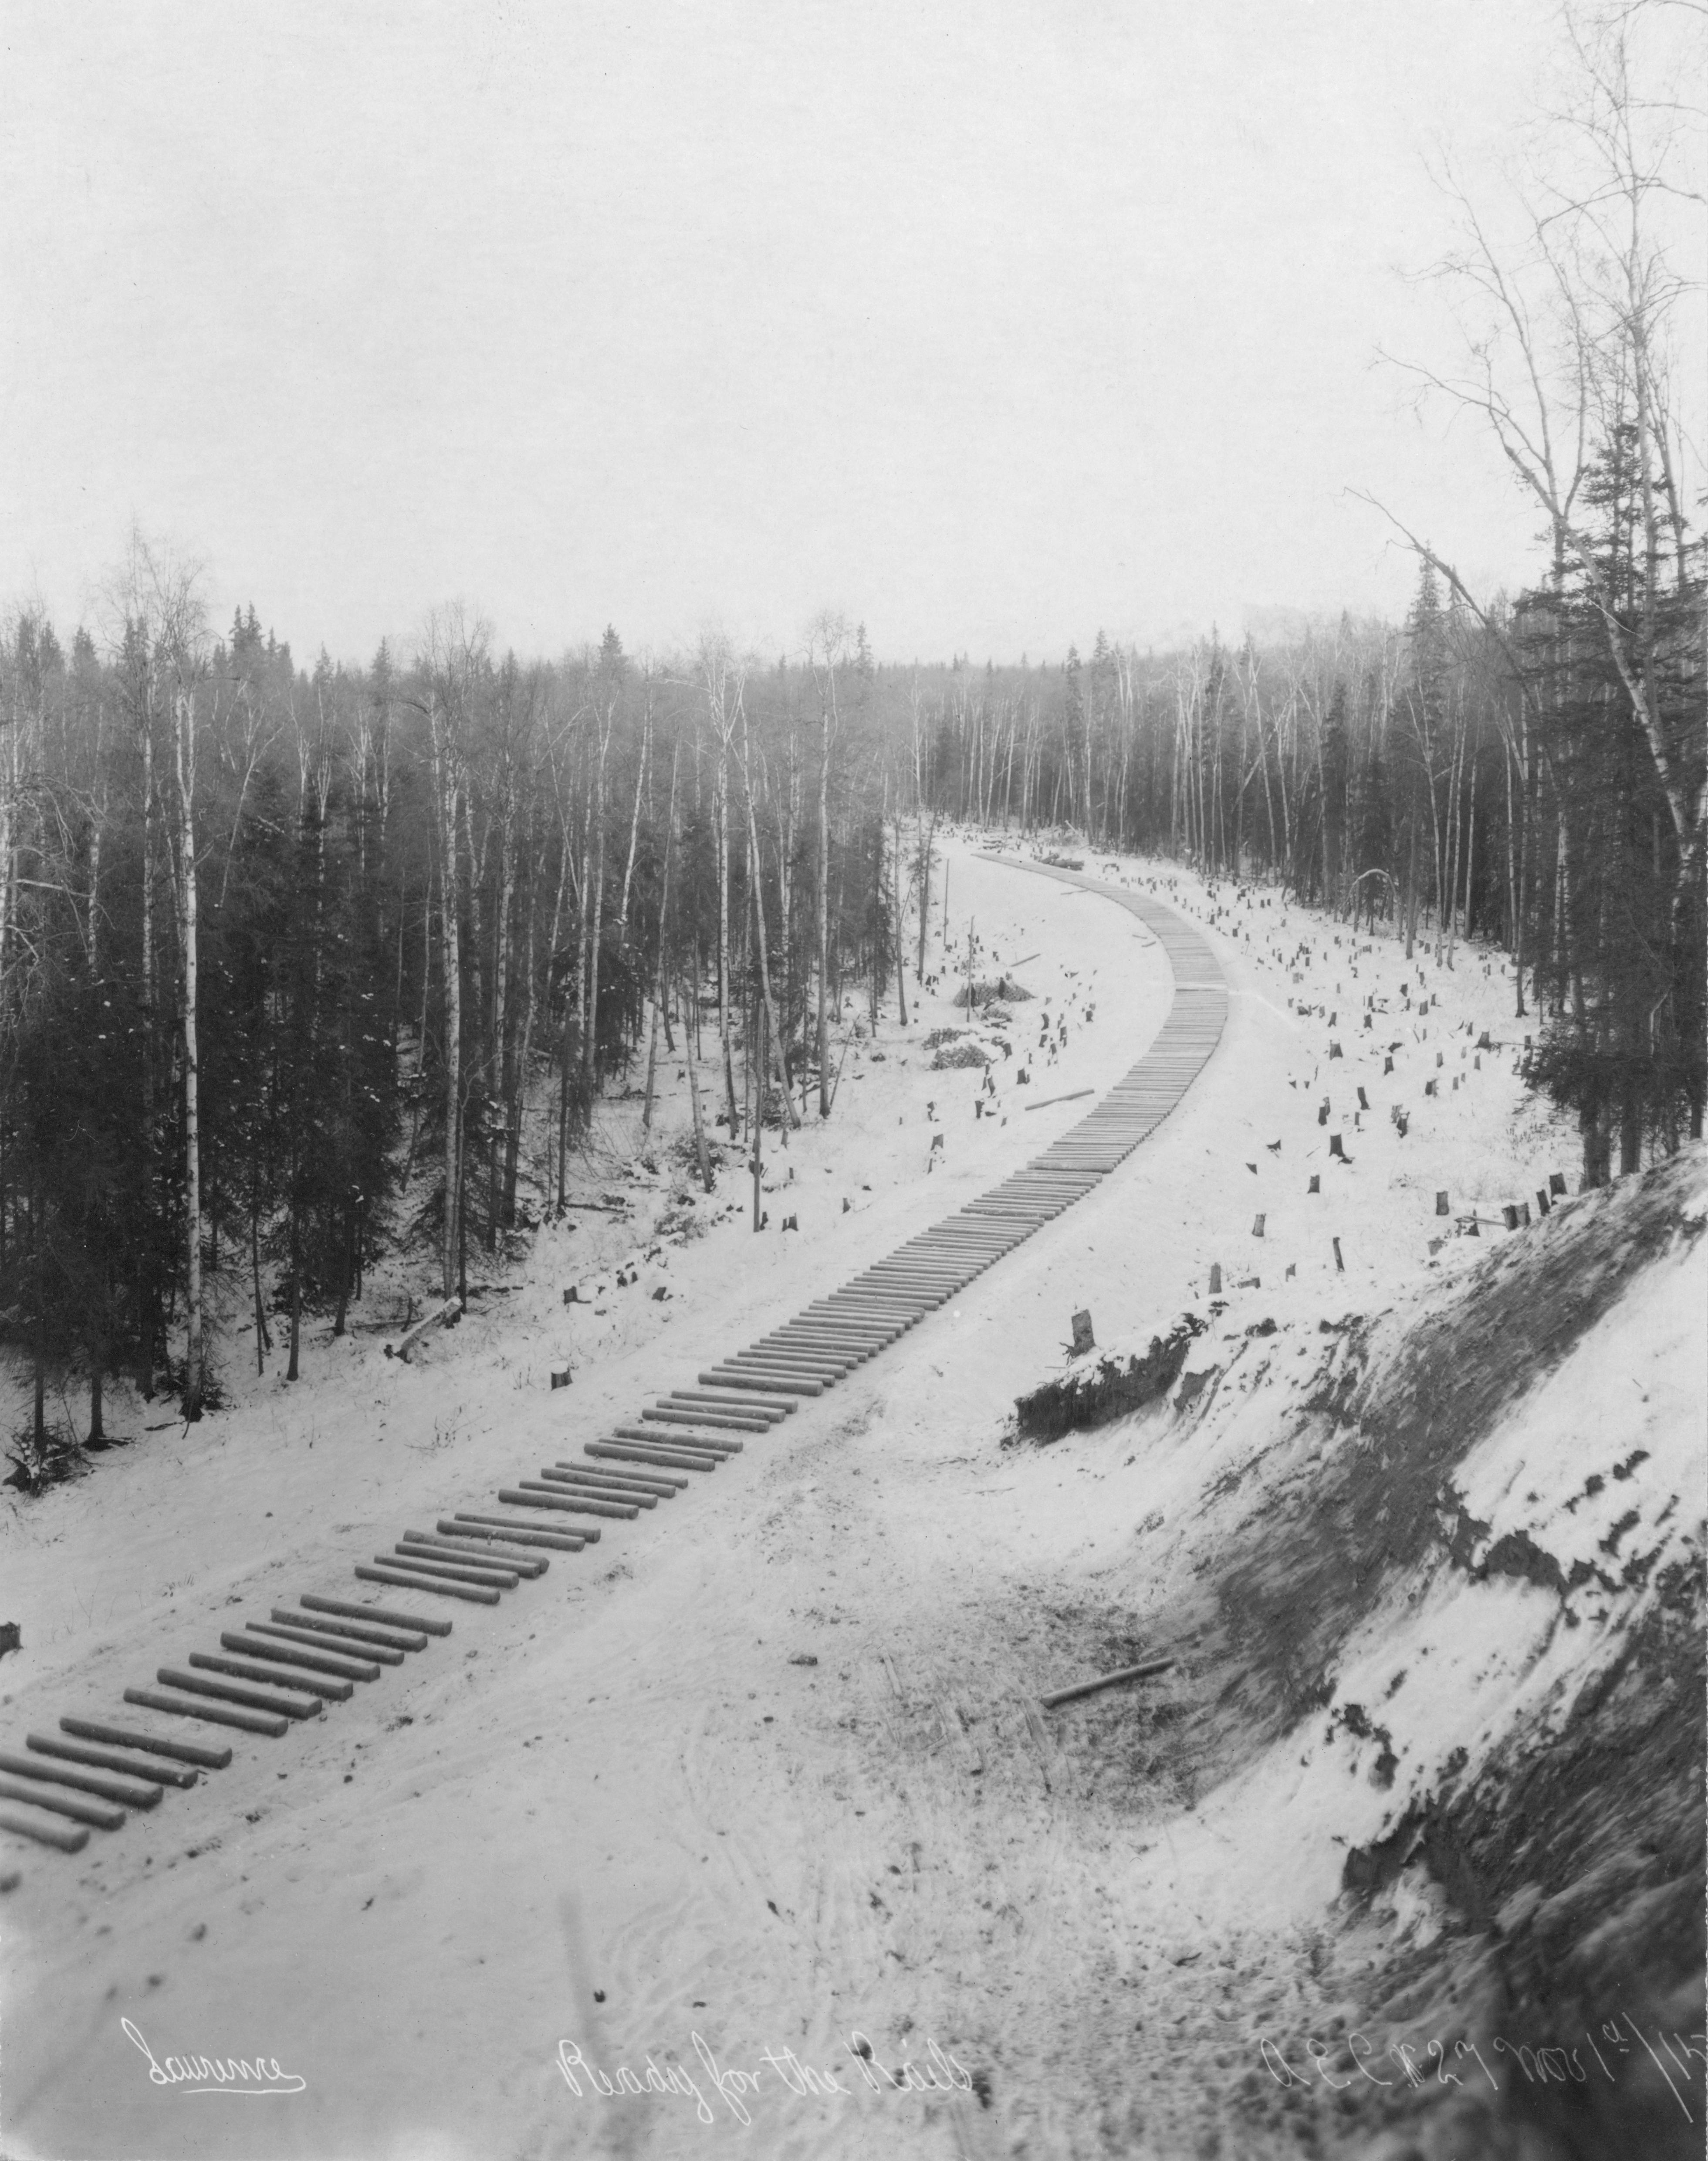 a history of the railroad construction in the united states This site explores the history of railroads, telegraphs railroads and the making of modern america a digital history project about the project | comments railroads expanded across the united states in bursts of construction and consolidation.